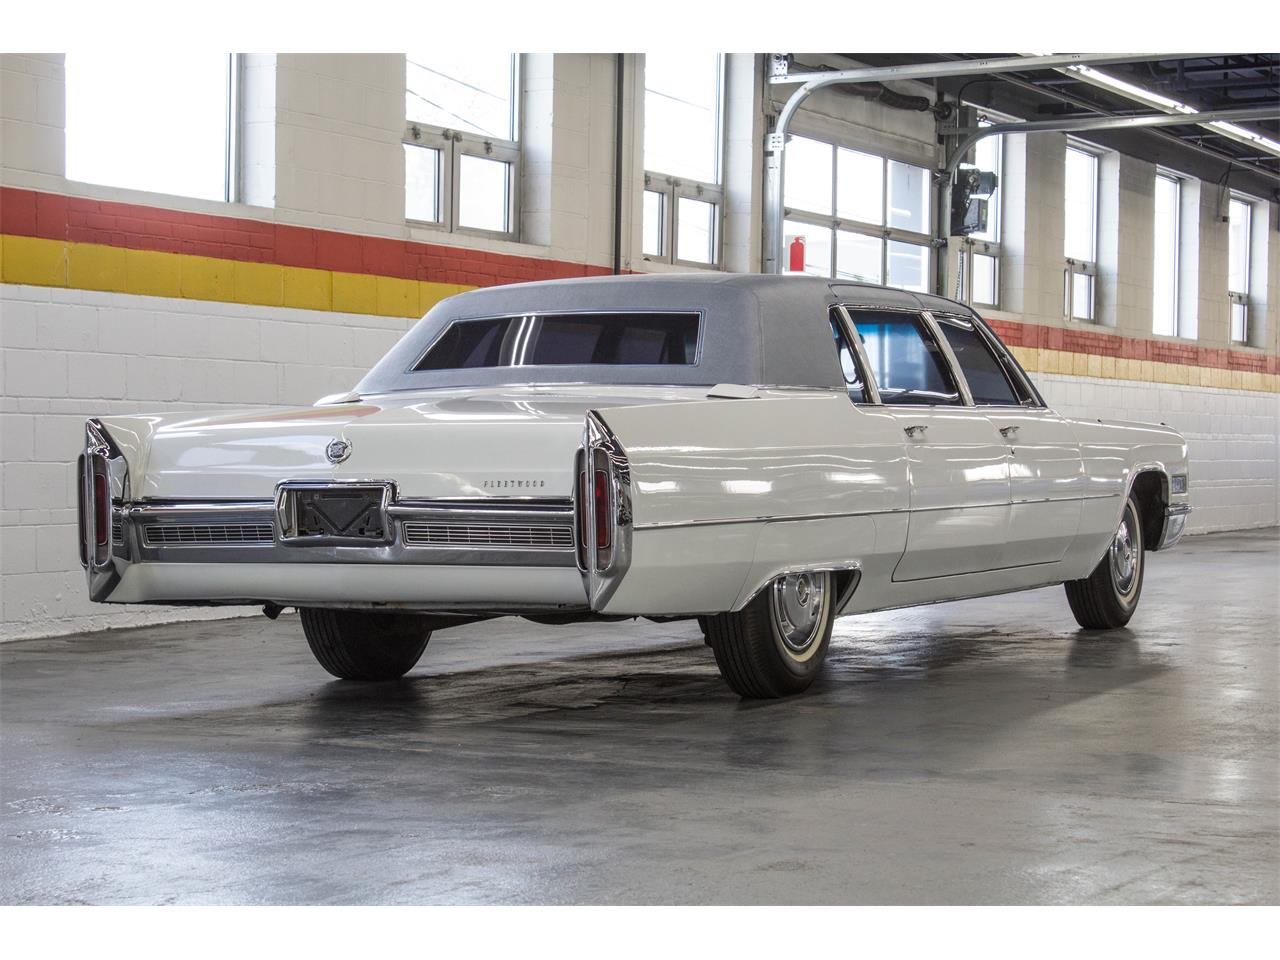 Large Picture of 1966 Fleetwood Limousine located in Quebec - $49,995.00 Offered by John Scotti Classic Cars - NKXQ